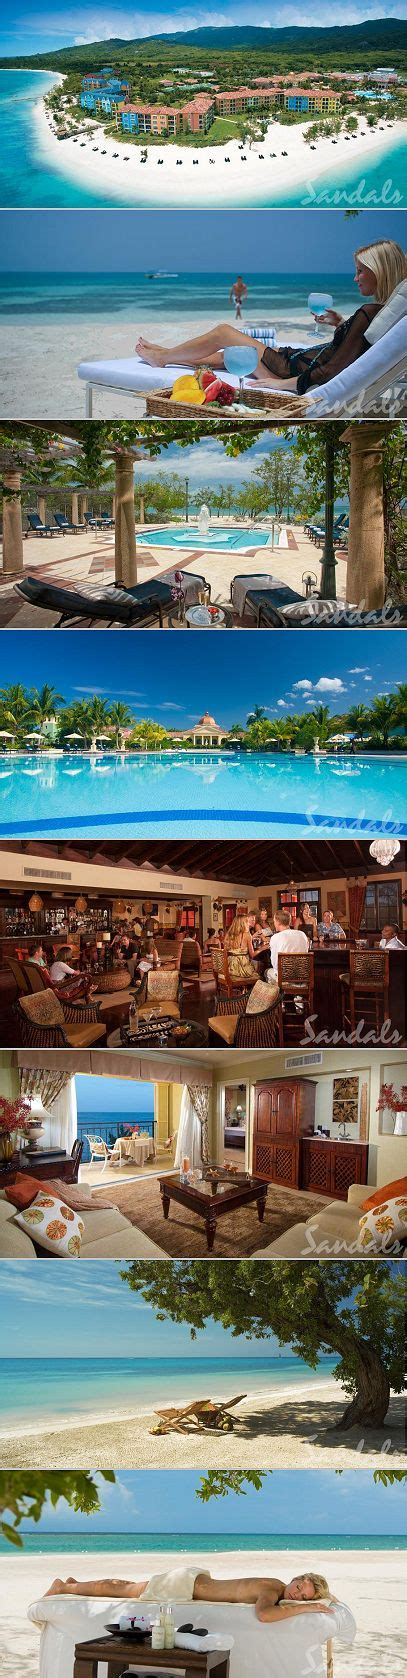 sandals whitehouse review the top caribbean all inclusive resorts for honeymoons